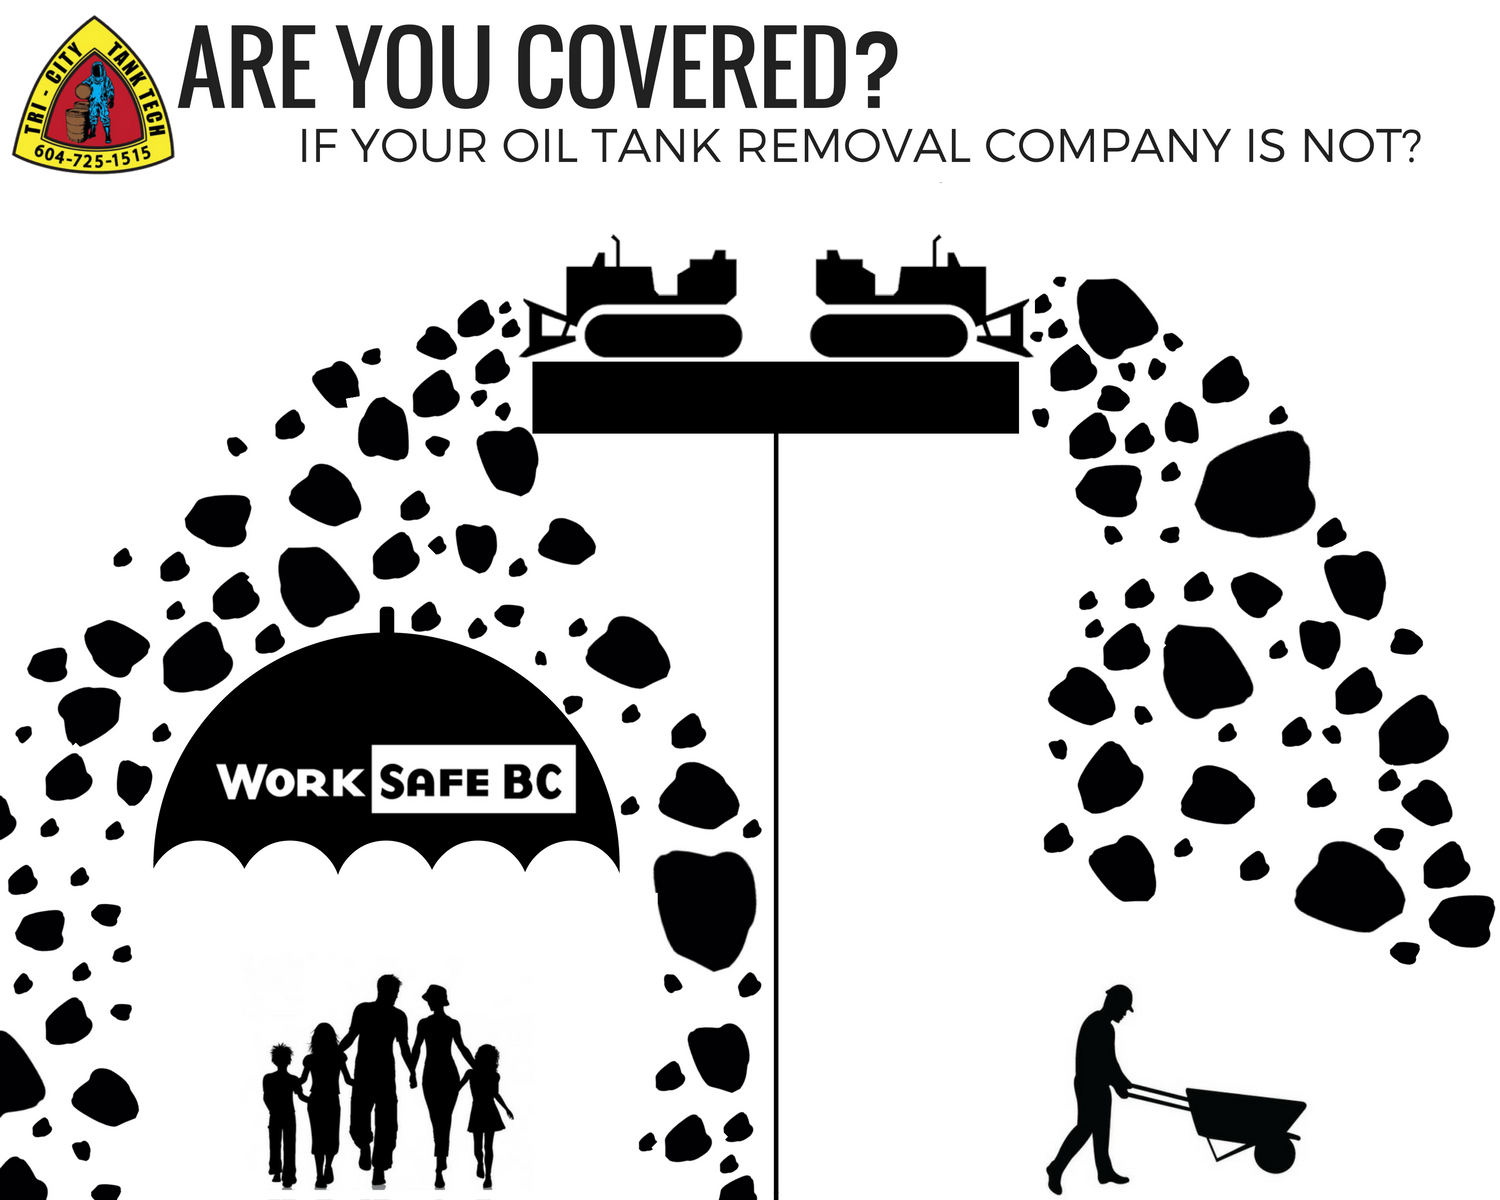 oil-tank-removal-are-you-covered-worksafe-bc-image